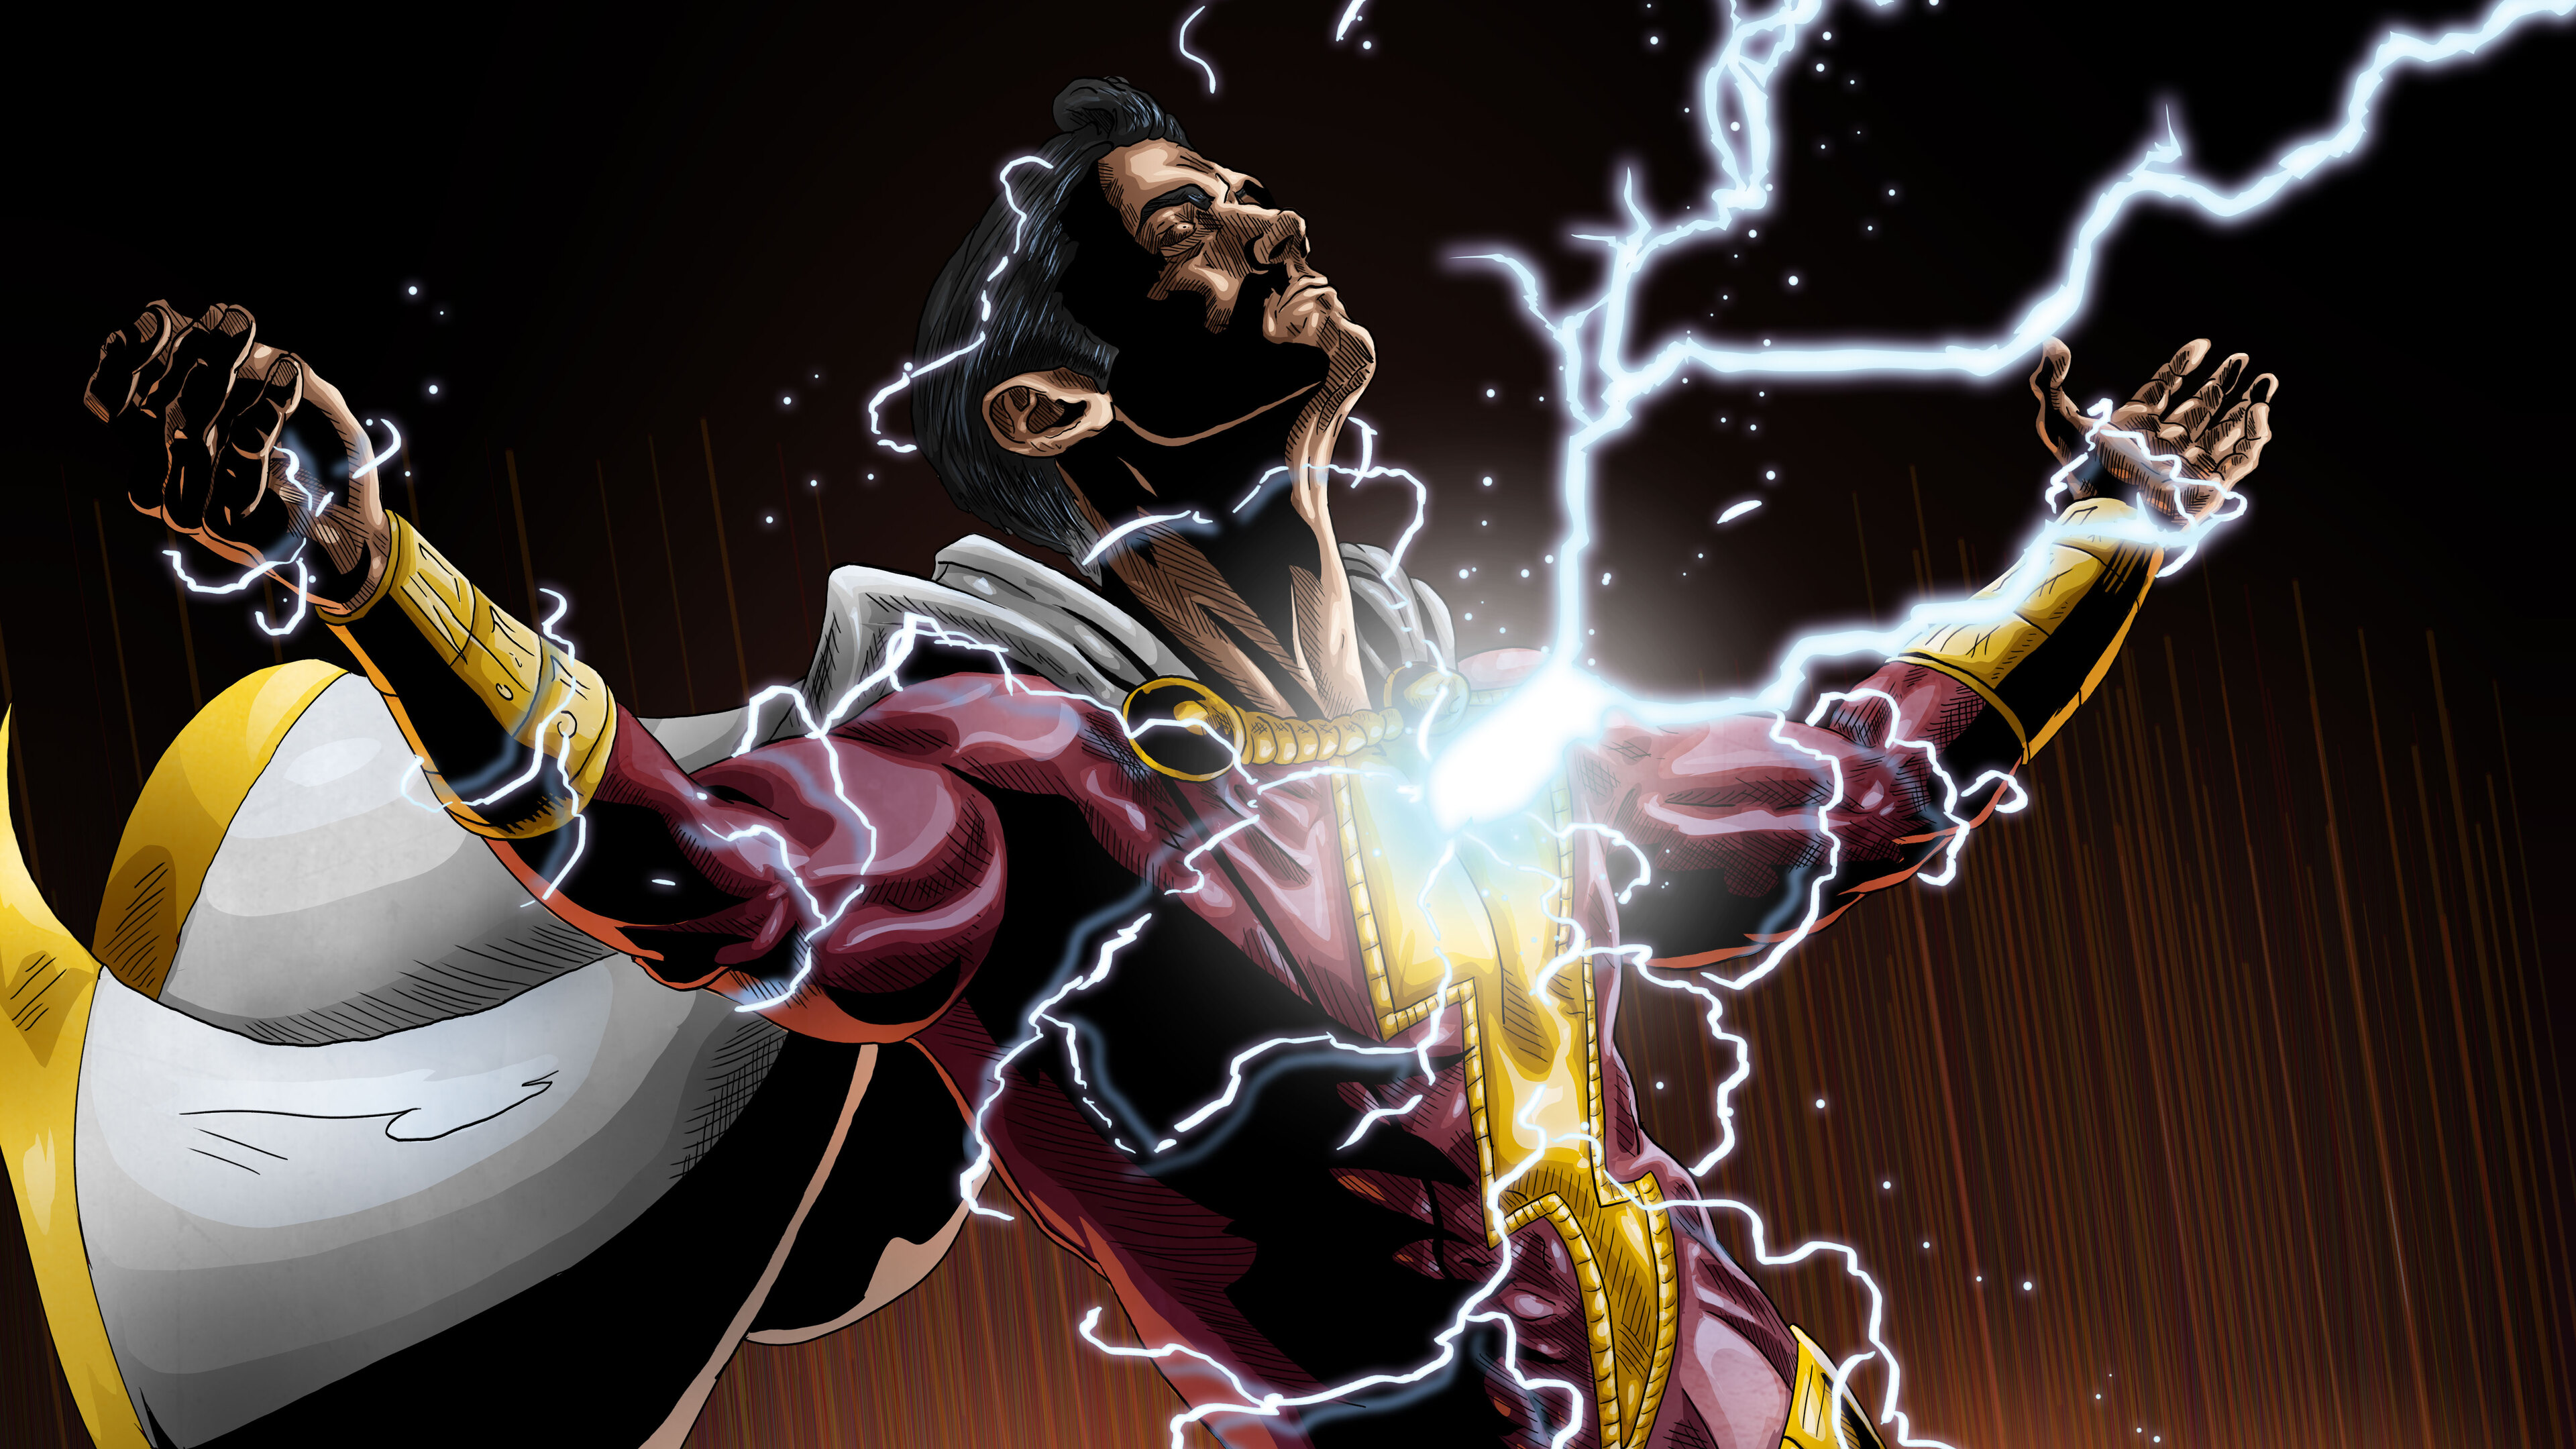 Top 13 Shazam Wallpapers In 4k And Full Hd That You Must